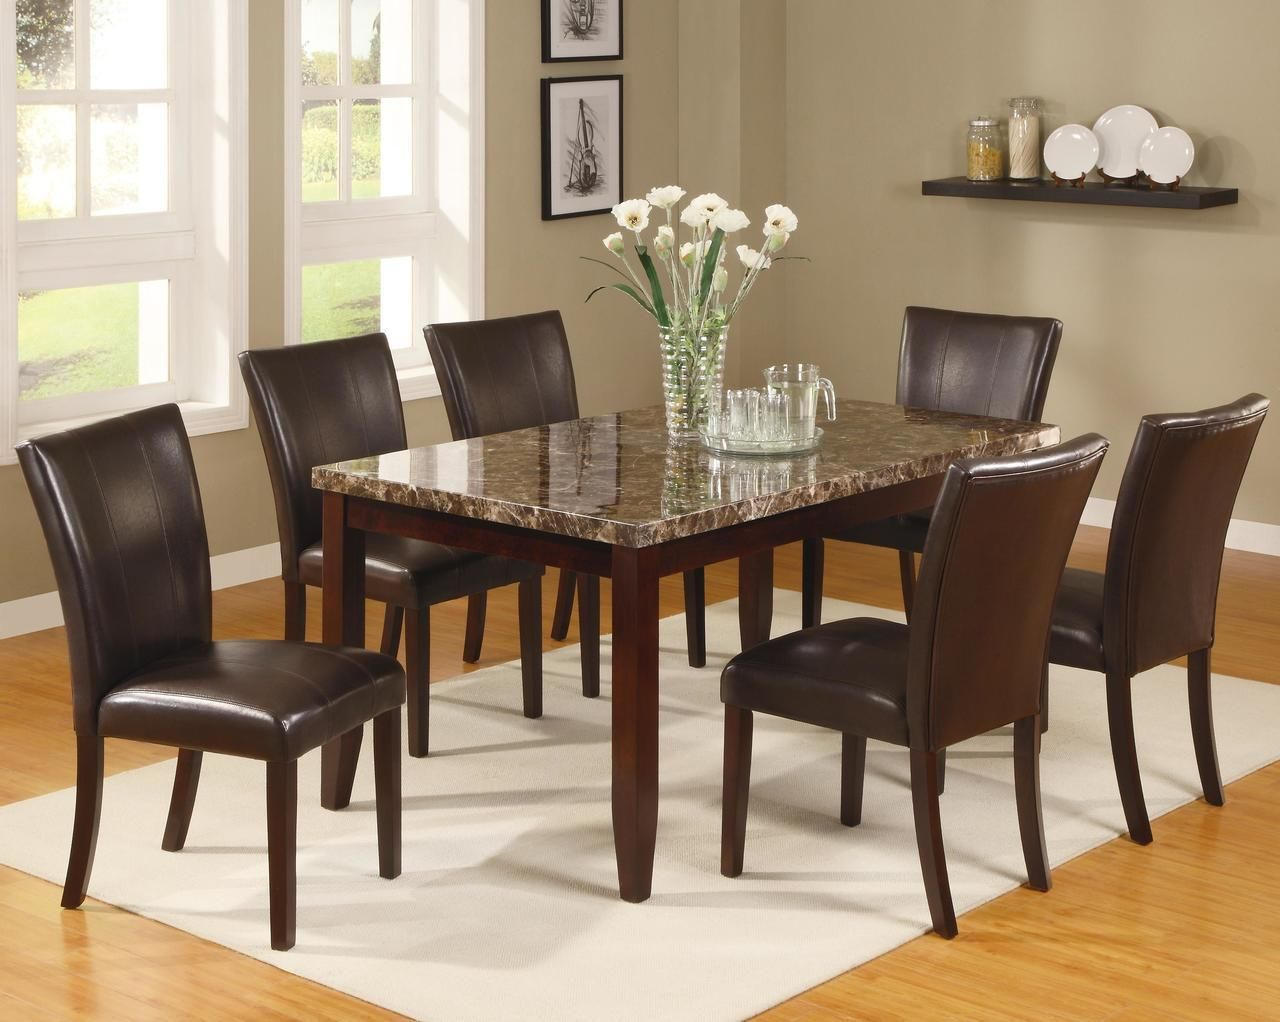 Ferrara Dining Table In 2019 Tables Dining Table Glass Top